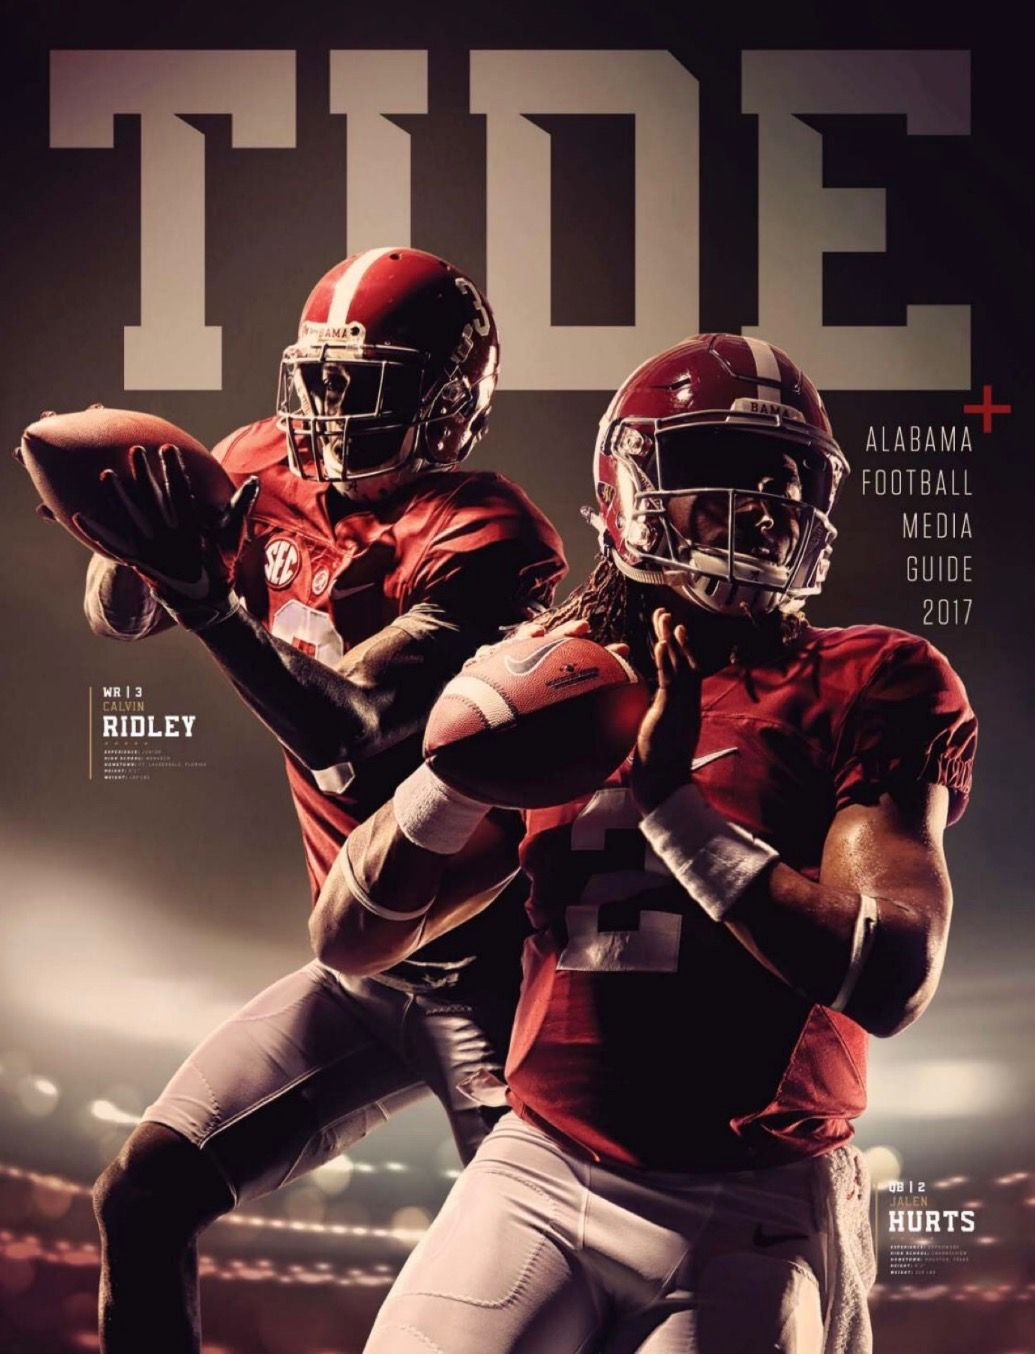 Calvin Ridley Jalen Hurts Cover From The Alabama Football 2017 Media Guide Issuu Al Alabama Crimson Tide Football Crimson Tide Fans Alabama Crimson Tide